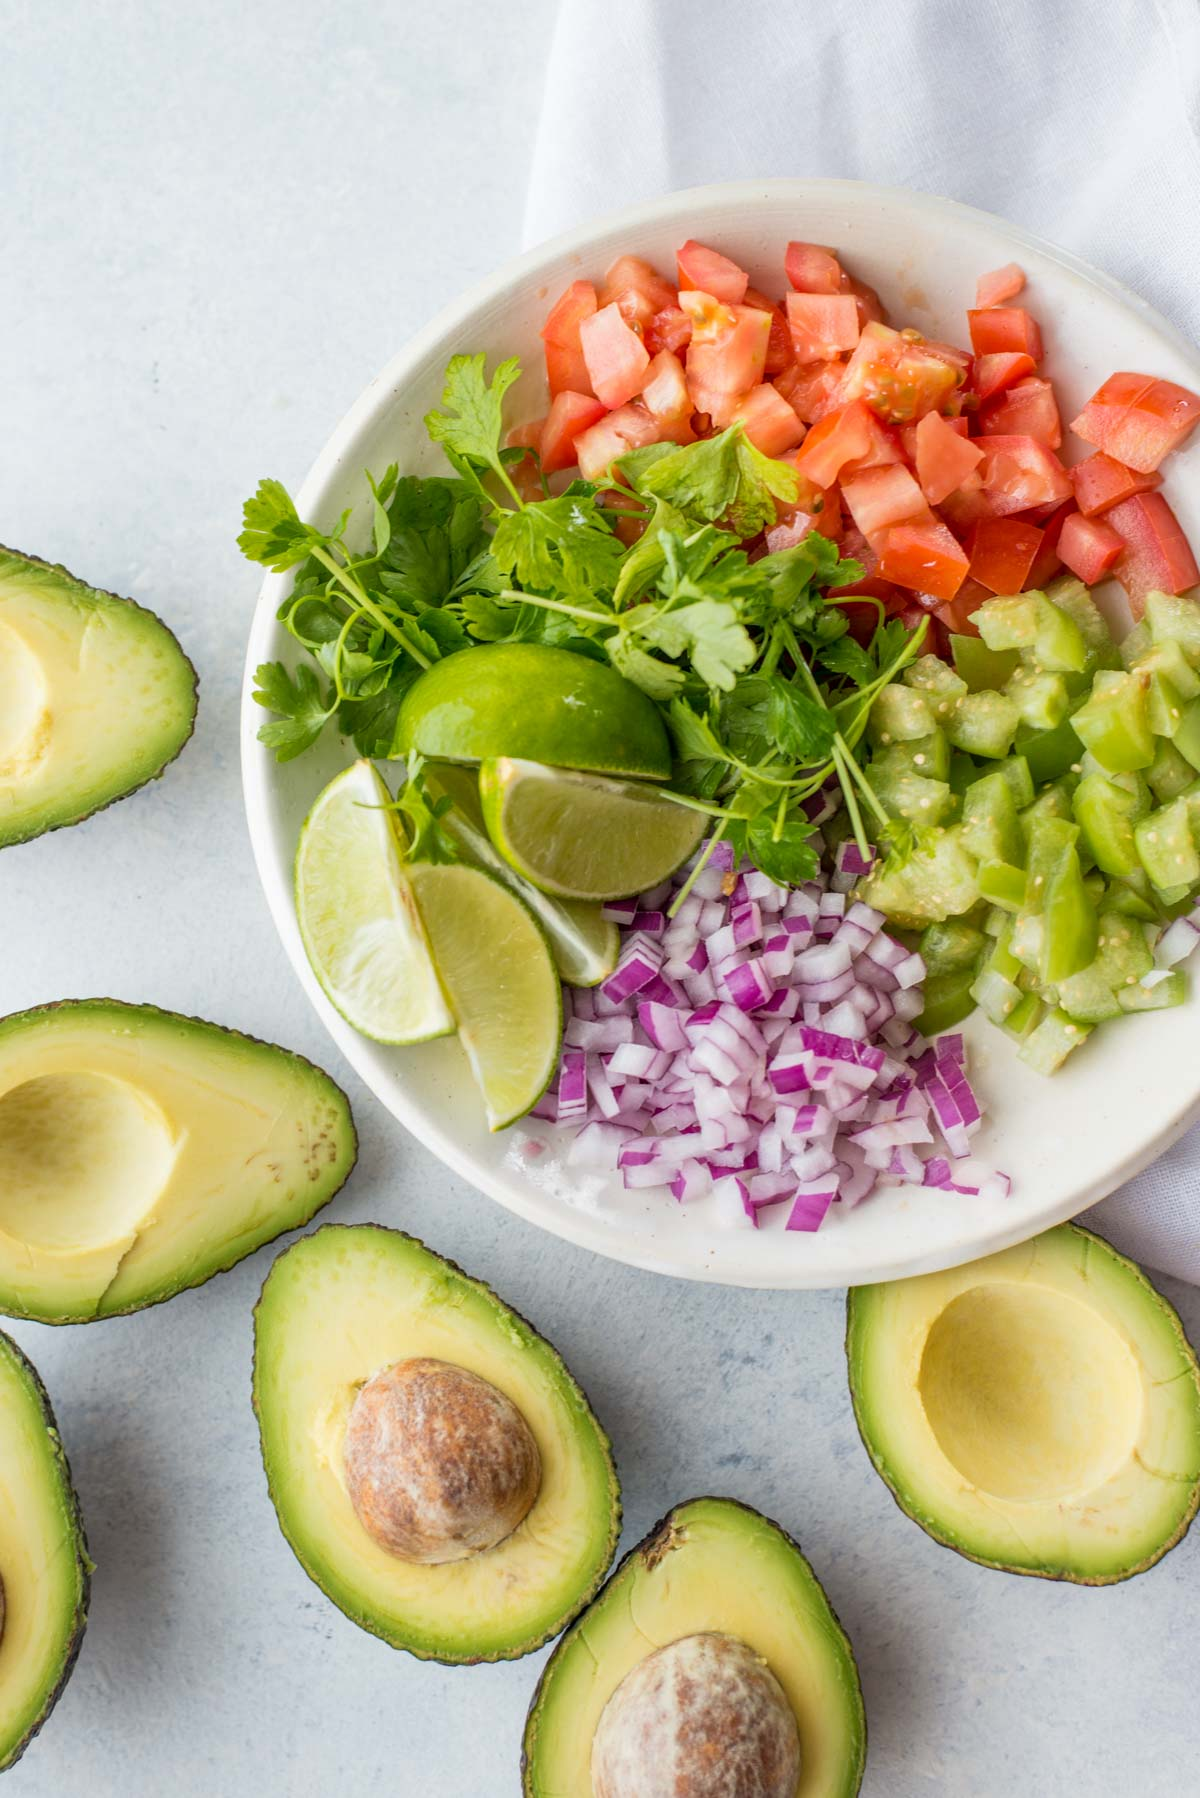 This 5 minute guacamole recipe is your answer to any meal.